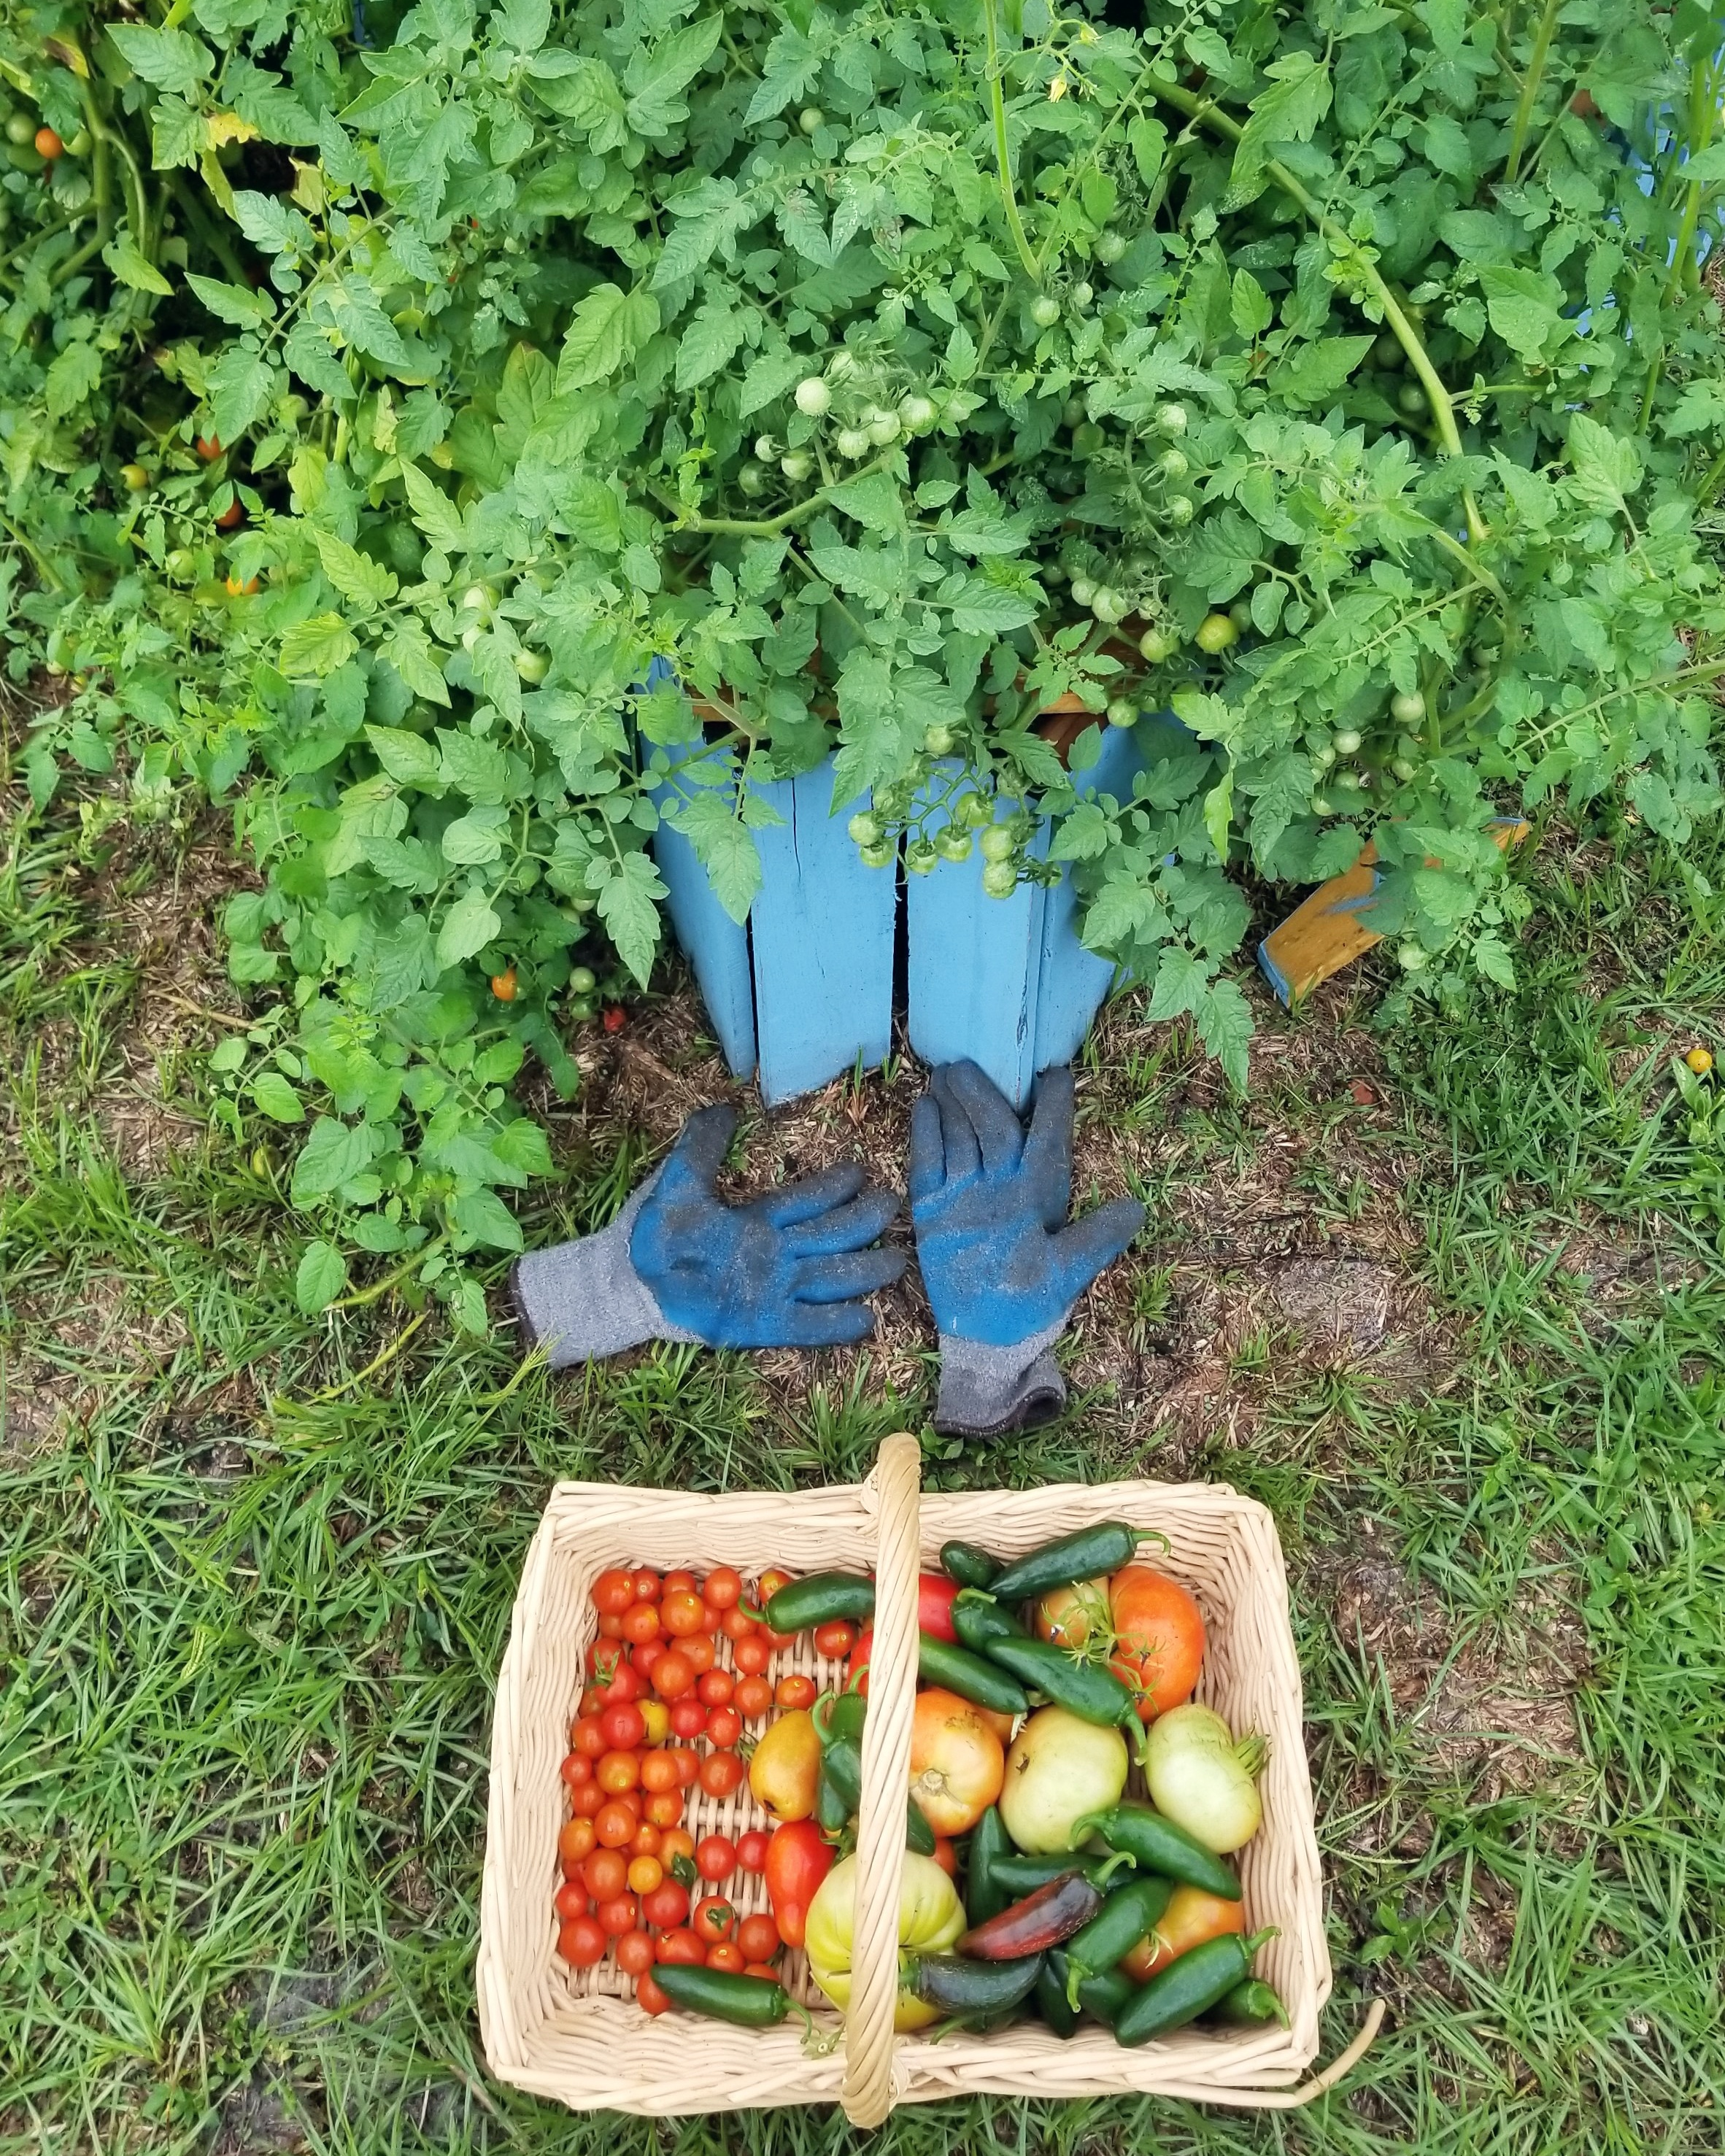 """We've produced yummy bok choy, green beans and sweet peas, beets, turnips, lettuce, kale, tomatoes and potatoes, strawberries, jalapenos, and much more."" -"